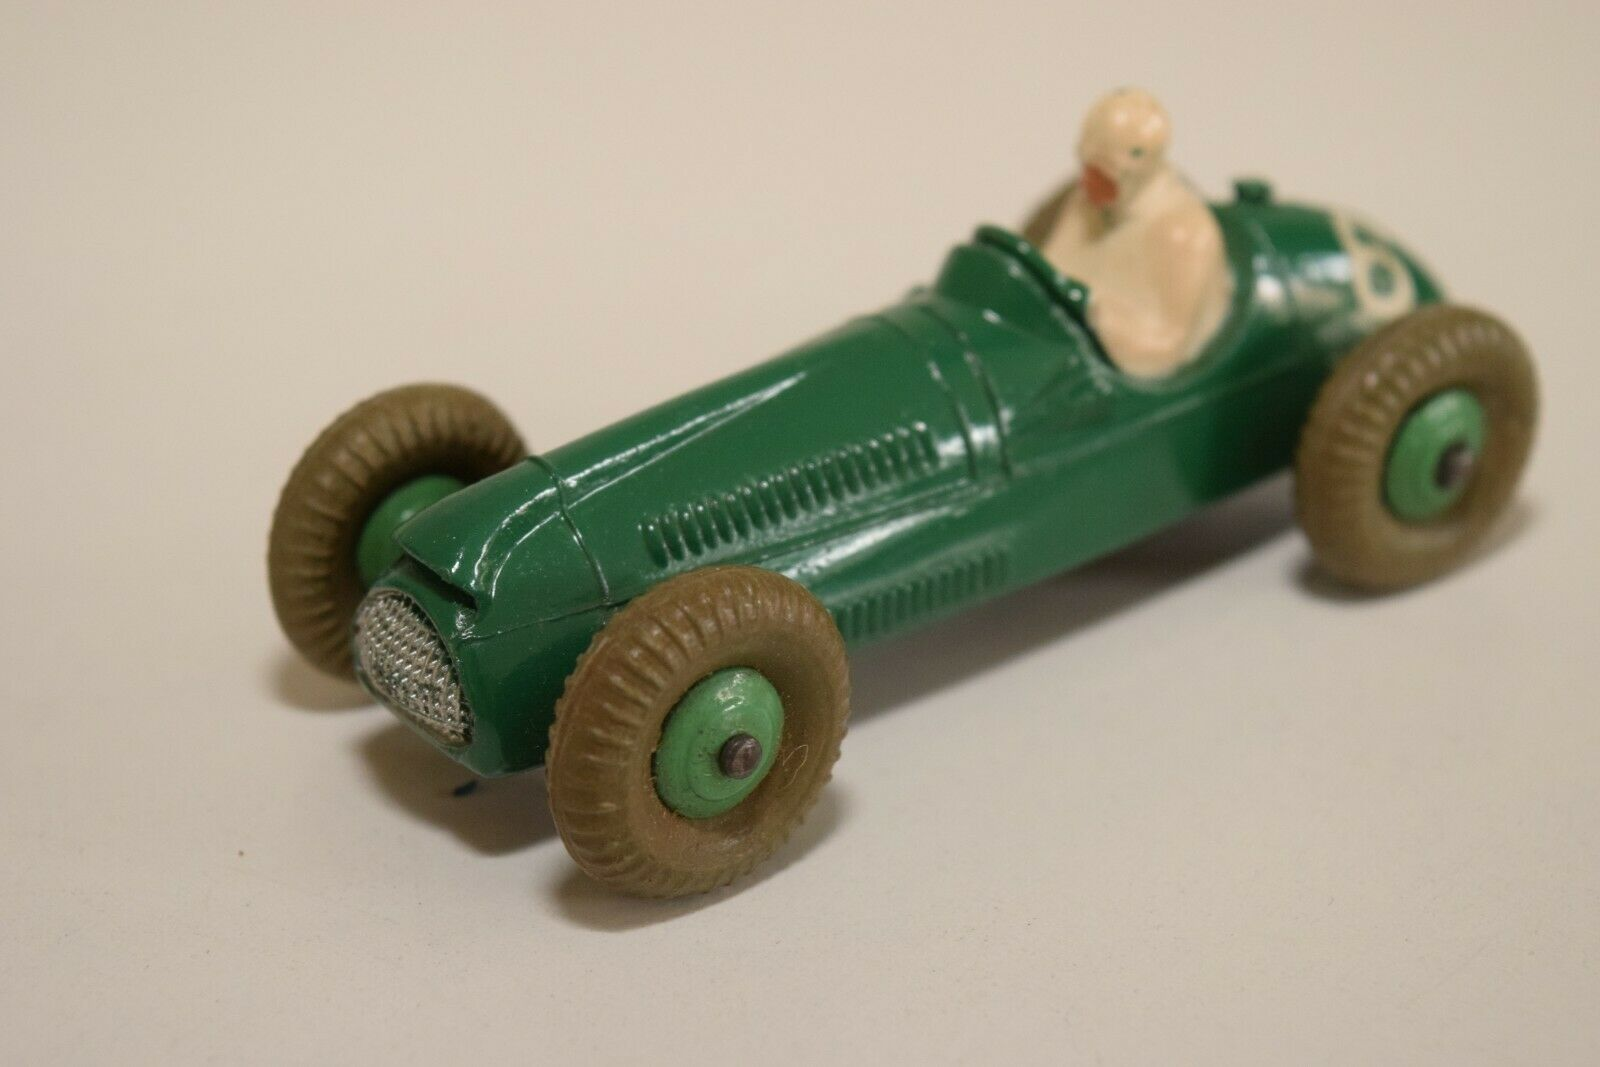 LL 1 43 DINKY TOYS 233 BRISTOL COOPE RACING CAR Grün NEAR MINT CONDITION